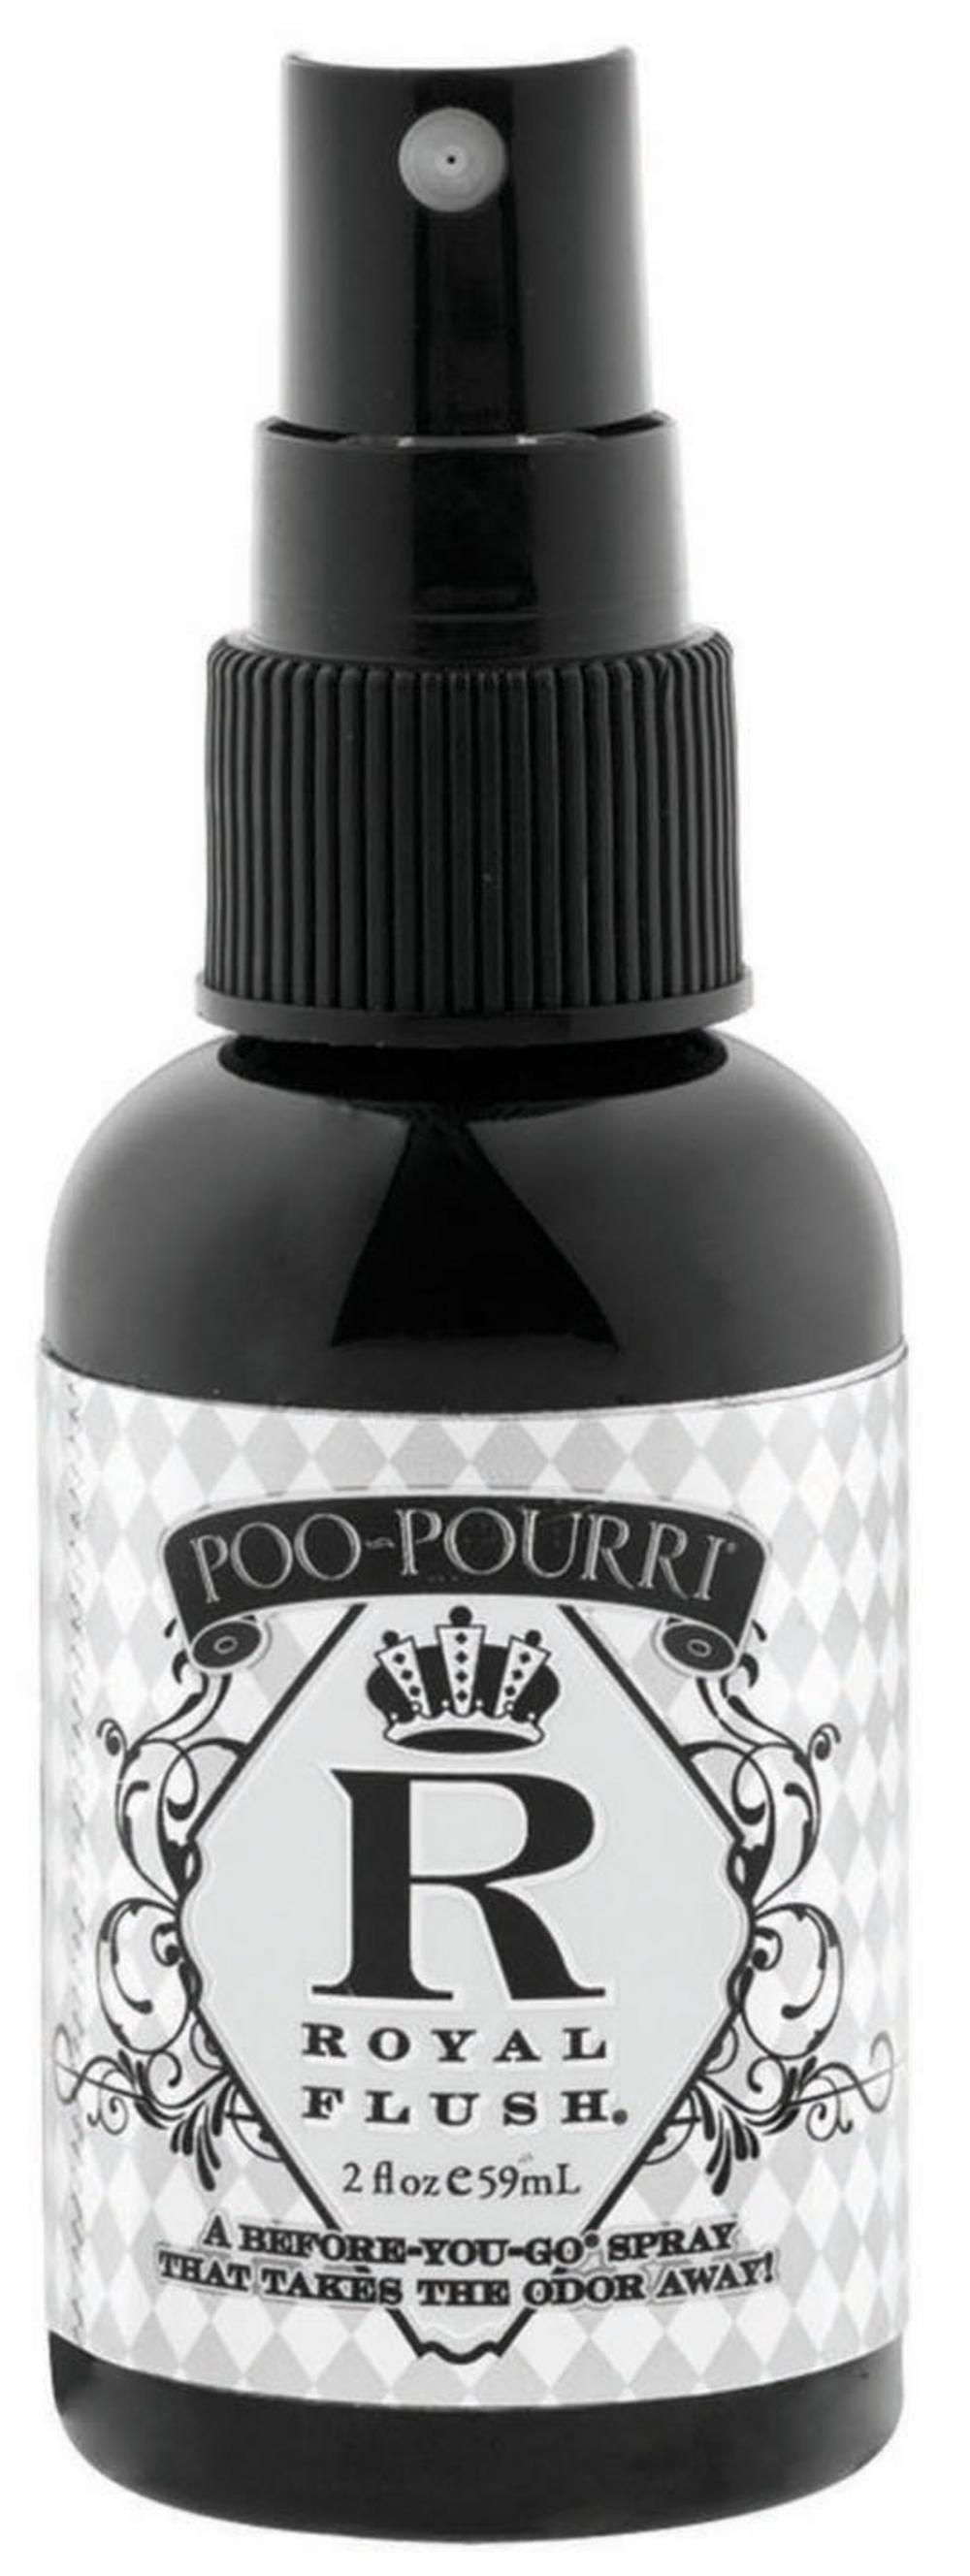 Poo Pourri Royal Flush Toilet Spray 4Oz -Ideal For A Gift-Dinner Party-Your Home